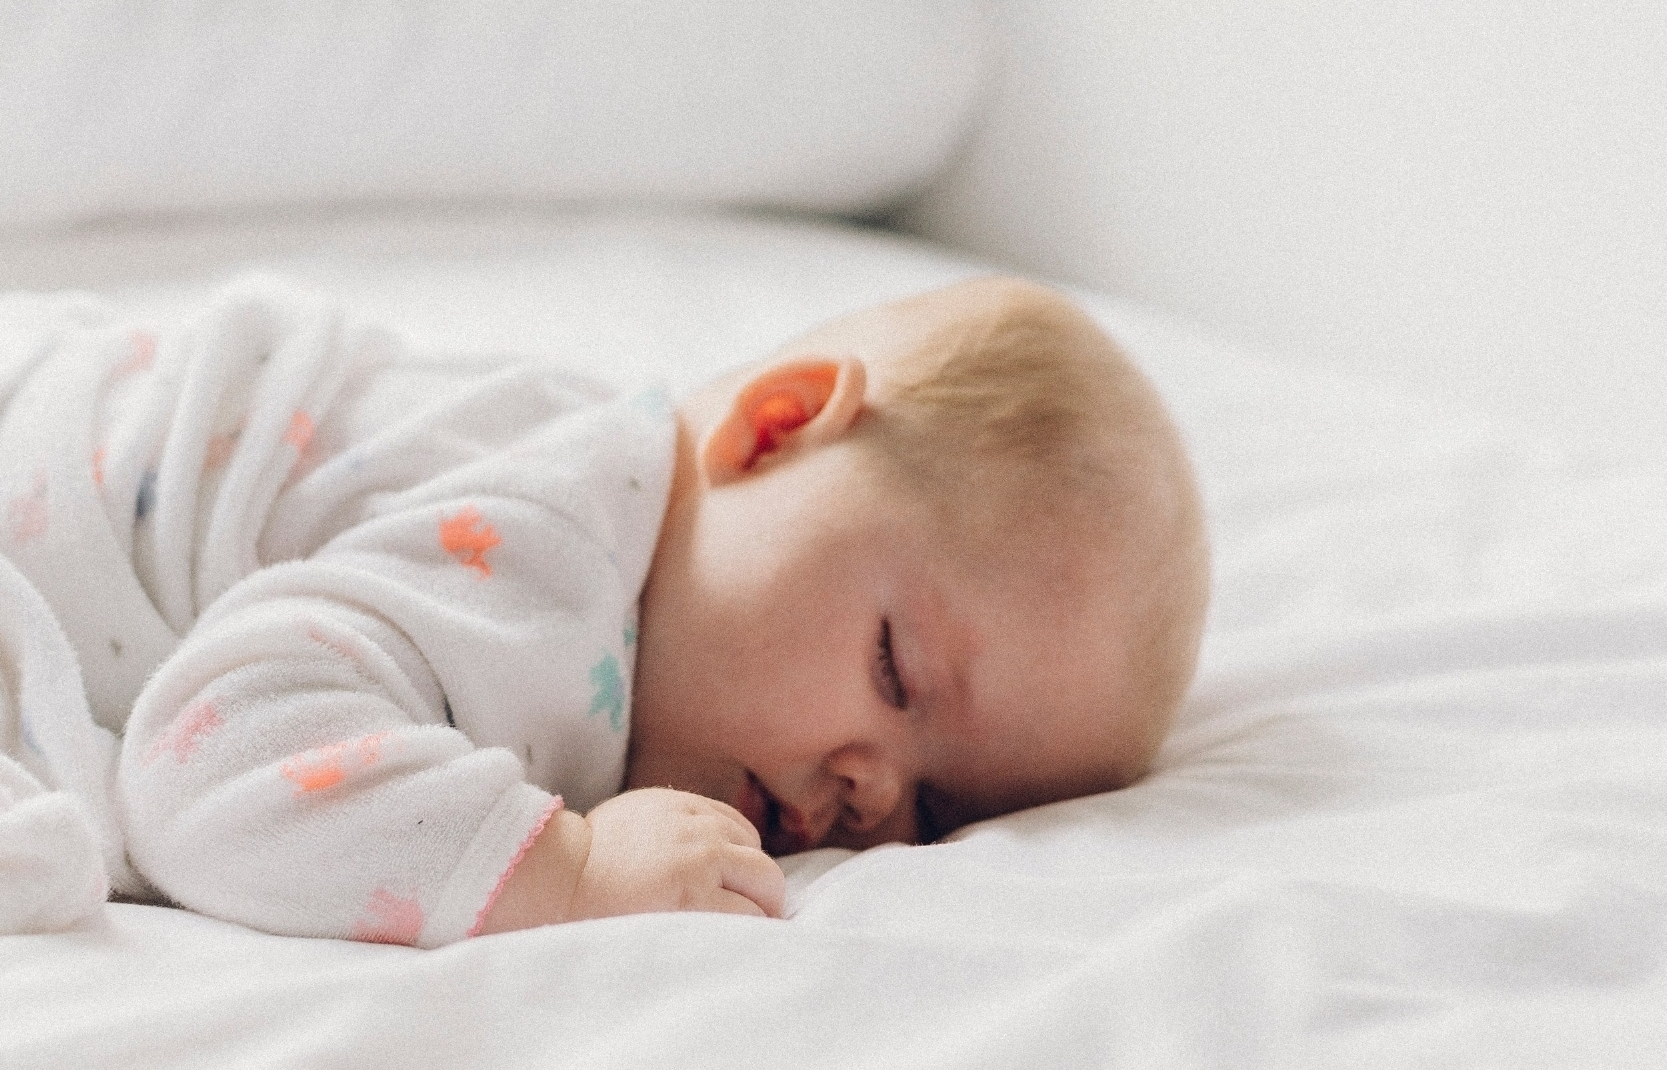 Is it better to have baby sleep on their tummy or back? -